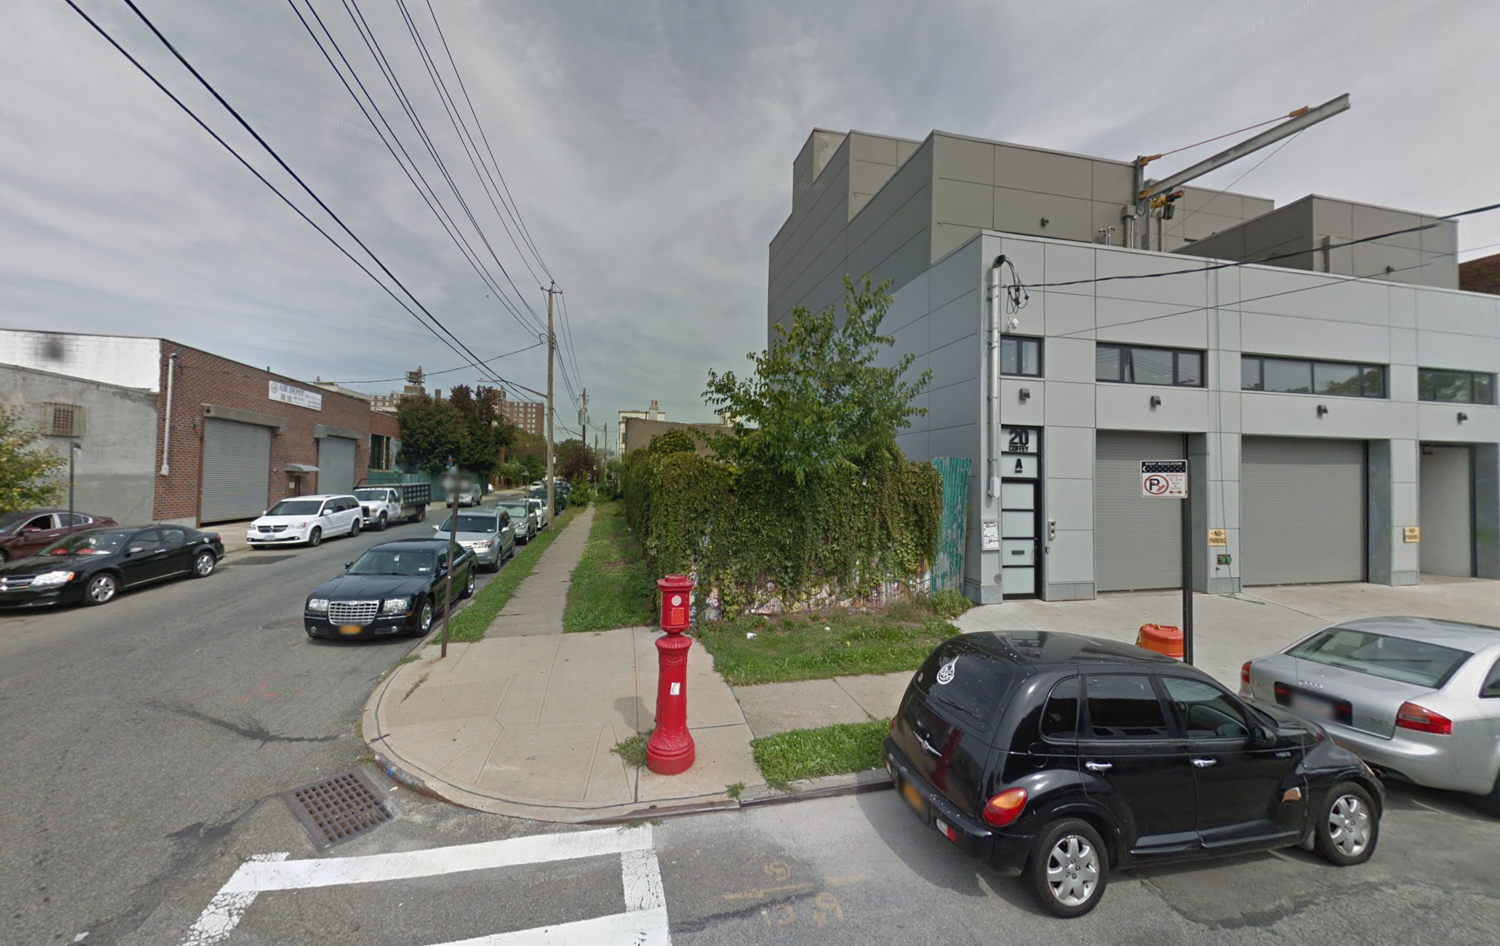 151 Dwight Street, via Google Maps